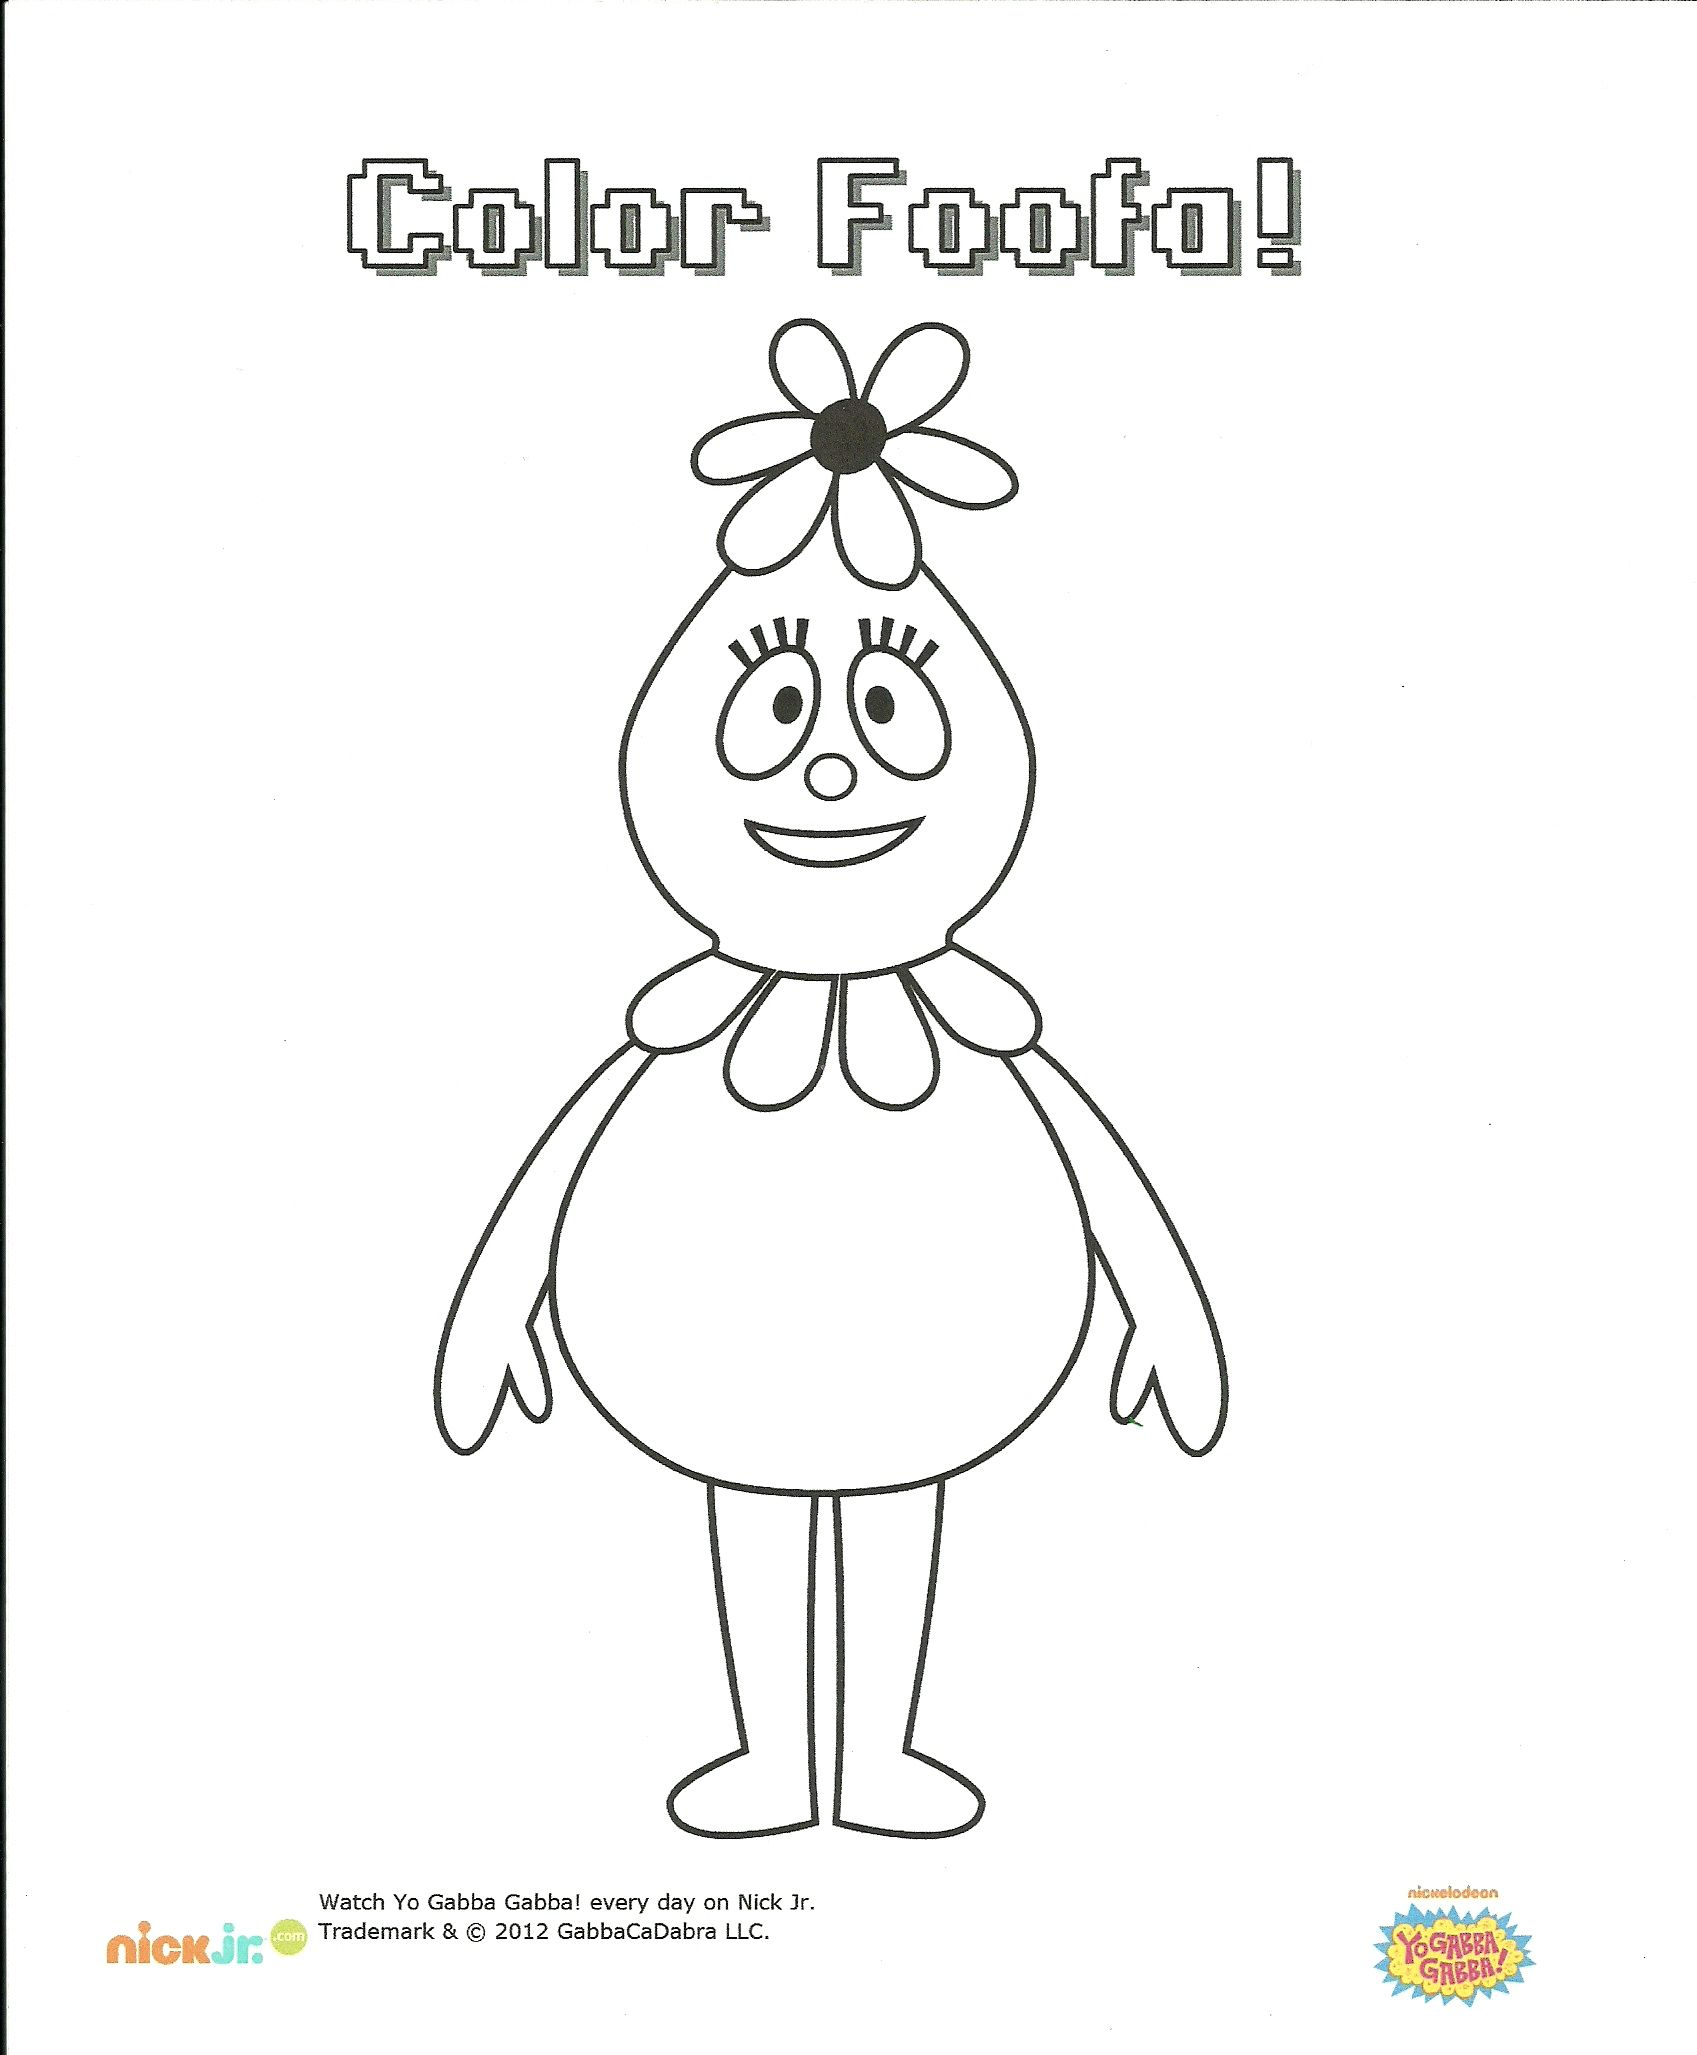 Foofa Coloring Page Coloring pages, Yo gabba gabba, Color